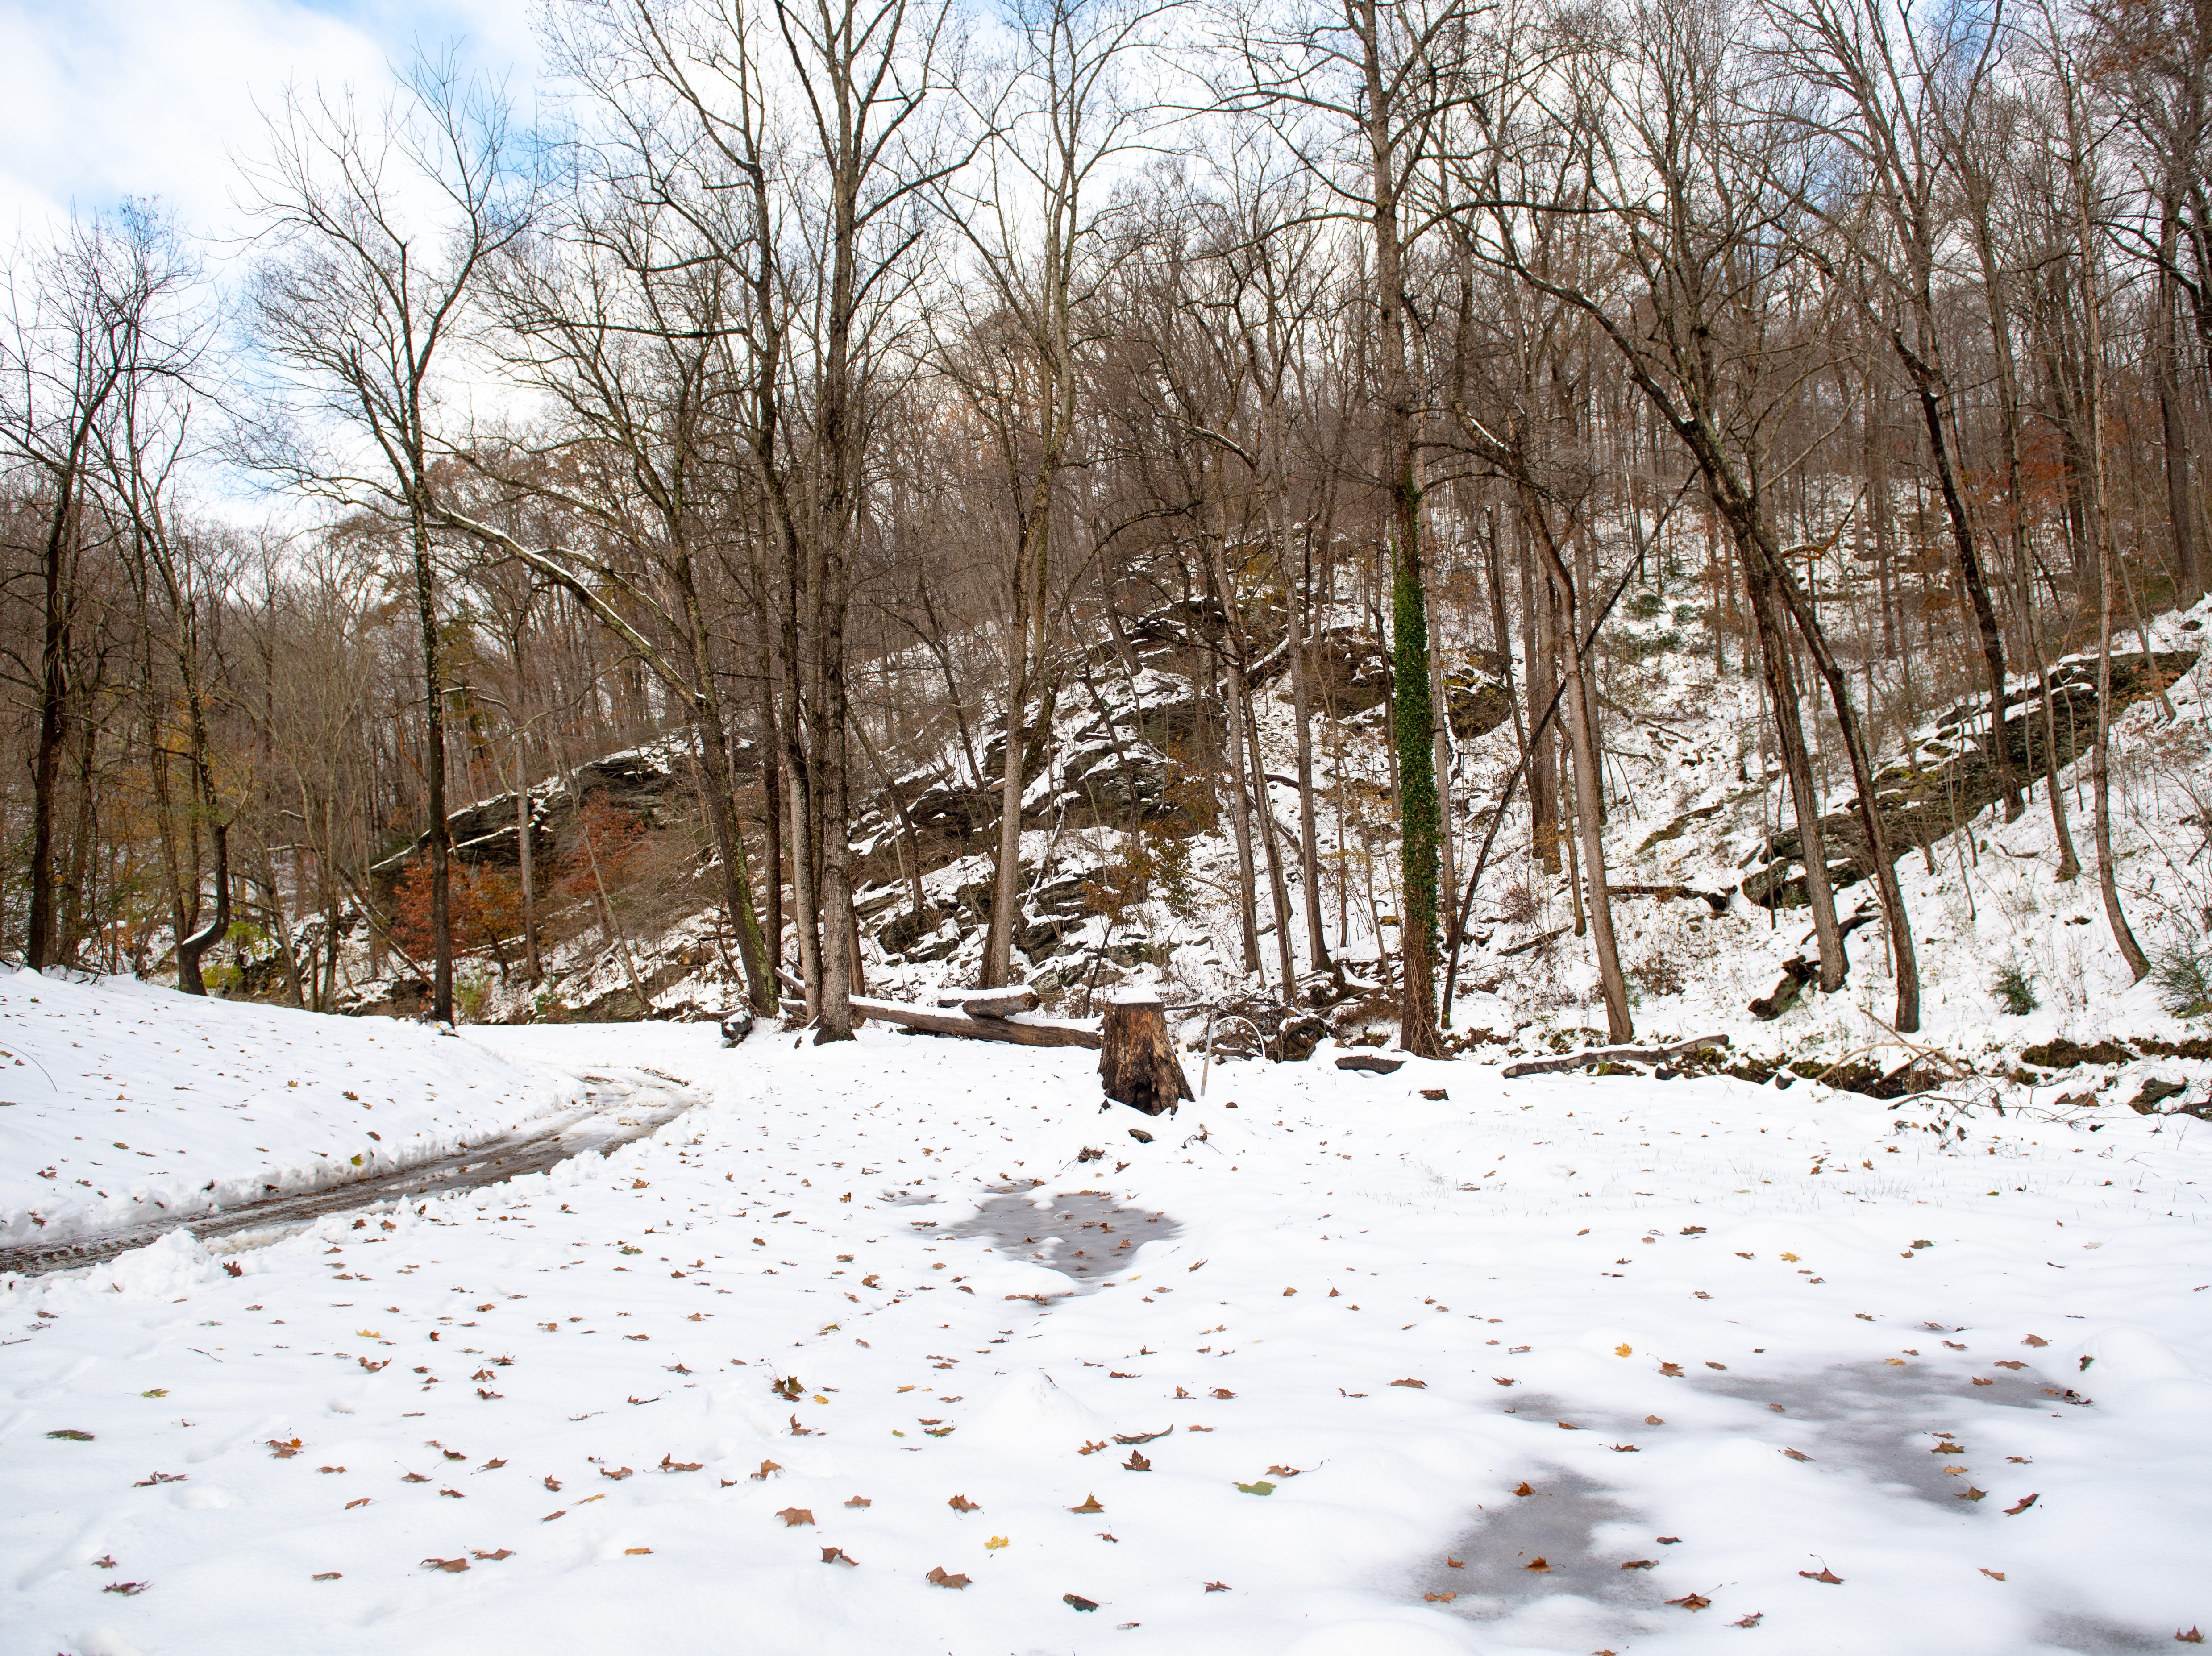 Donnie Grove used to watch eagles and otters from his home alongside Otter Creek. Now there's just a snow-covered lot, November 16, 2018.